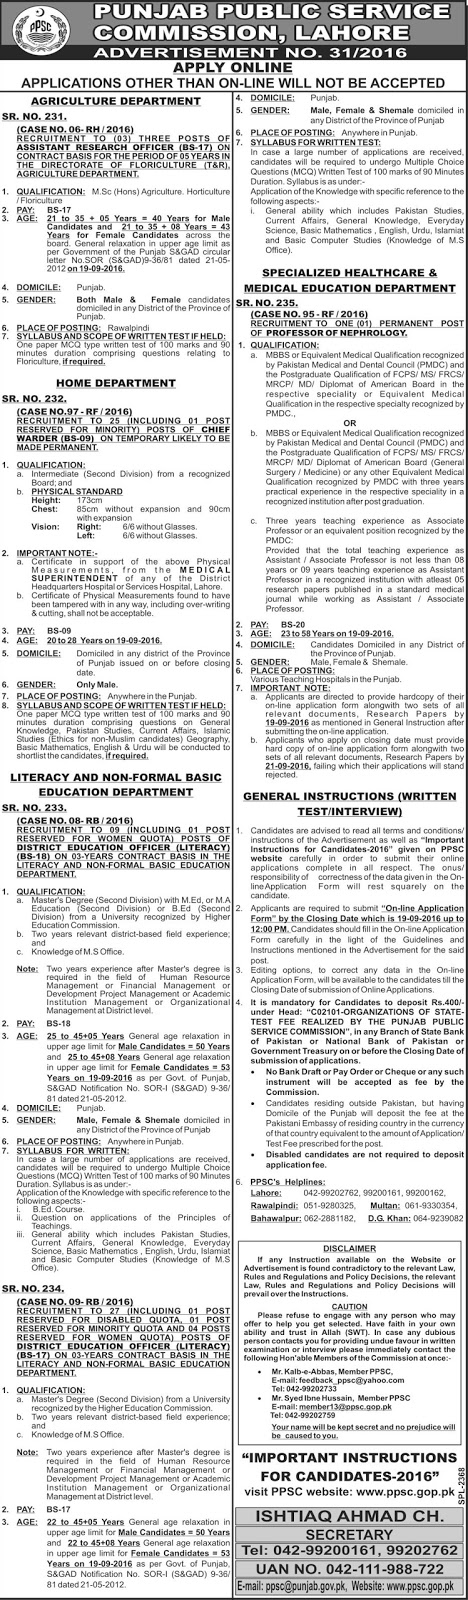 Latest PPSC Jobs in Pakistan 2016